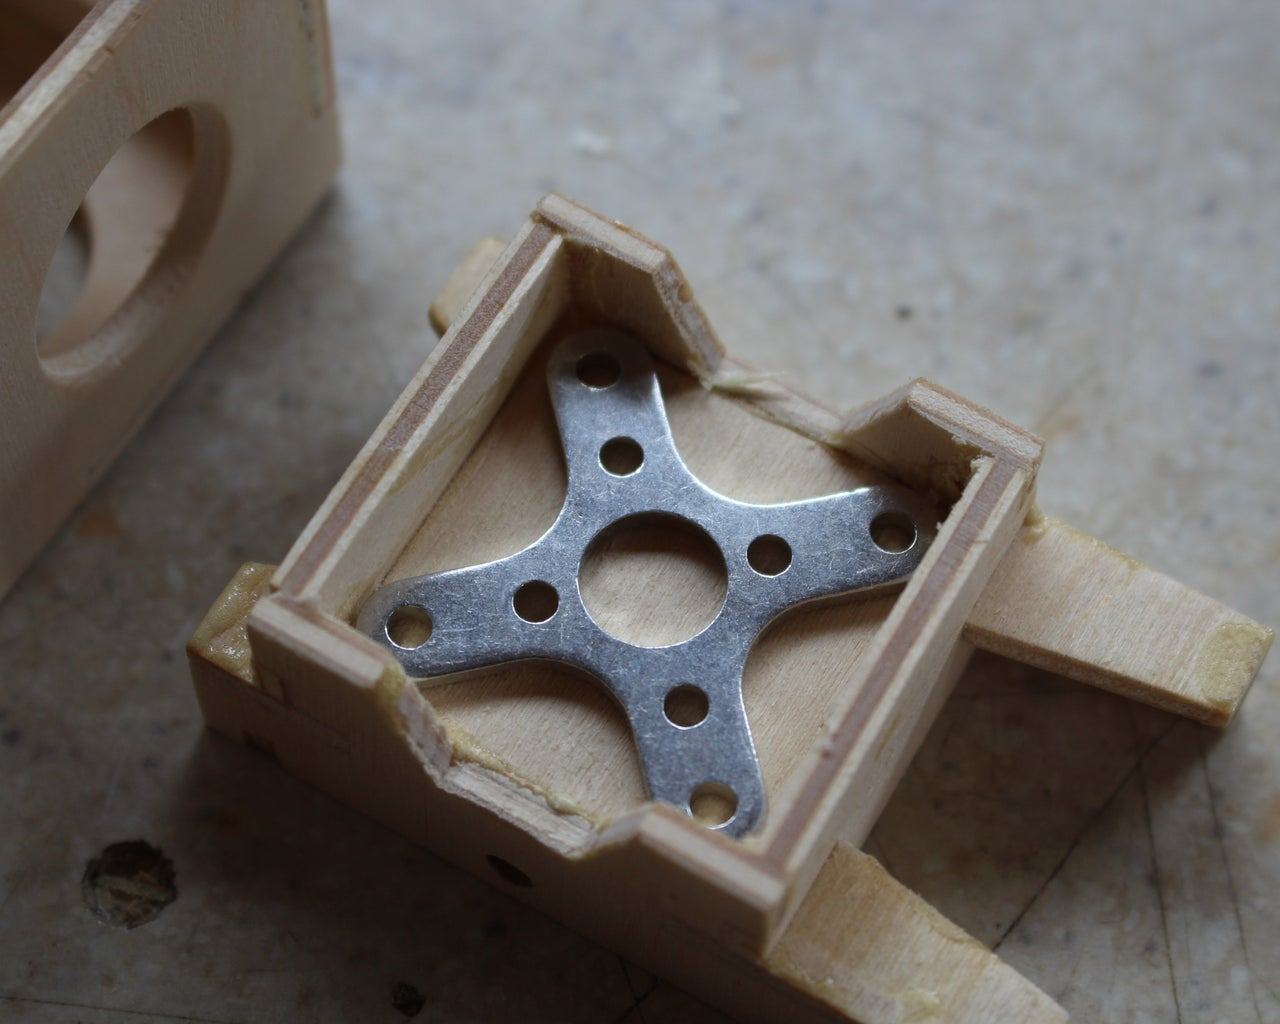 Gluing the Bits Together.